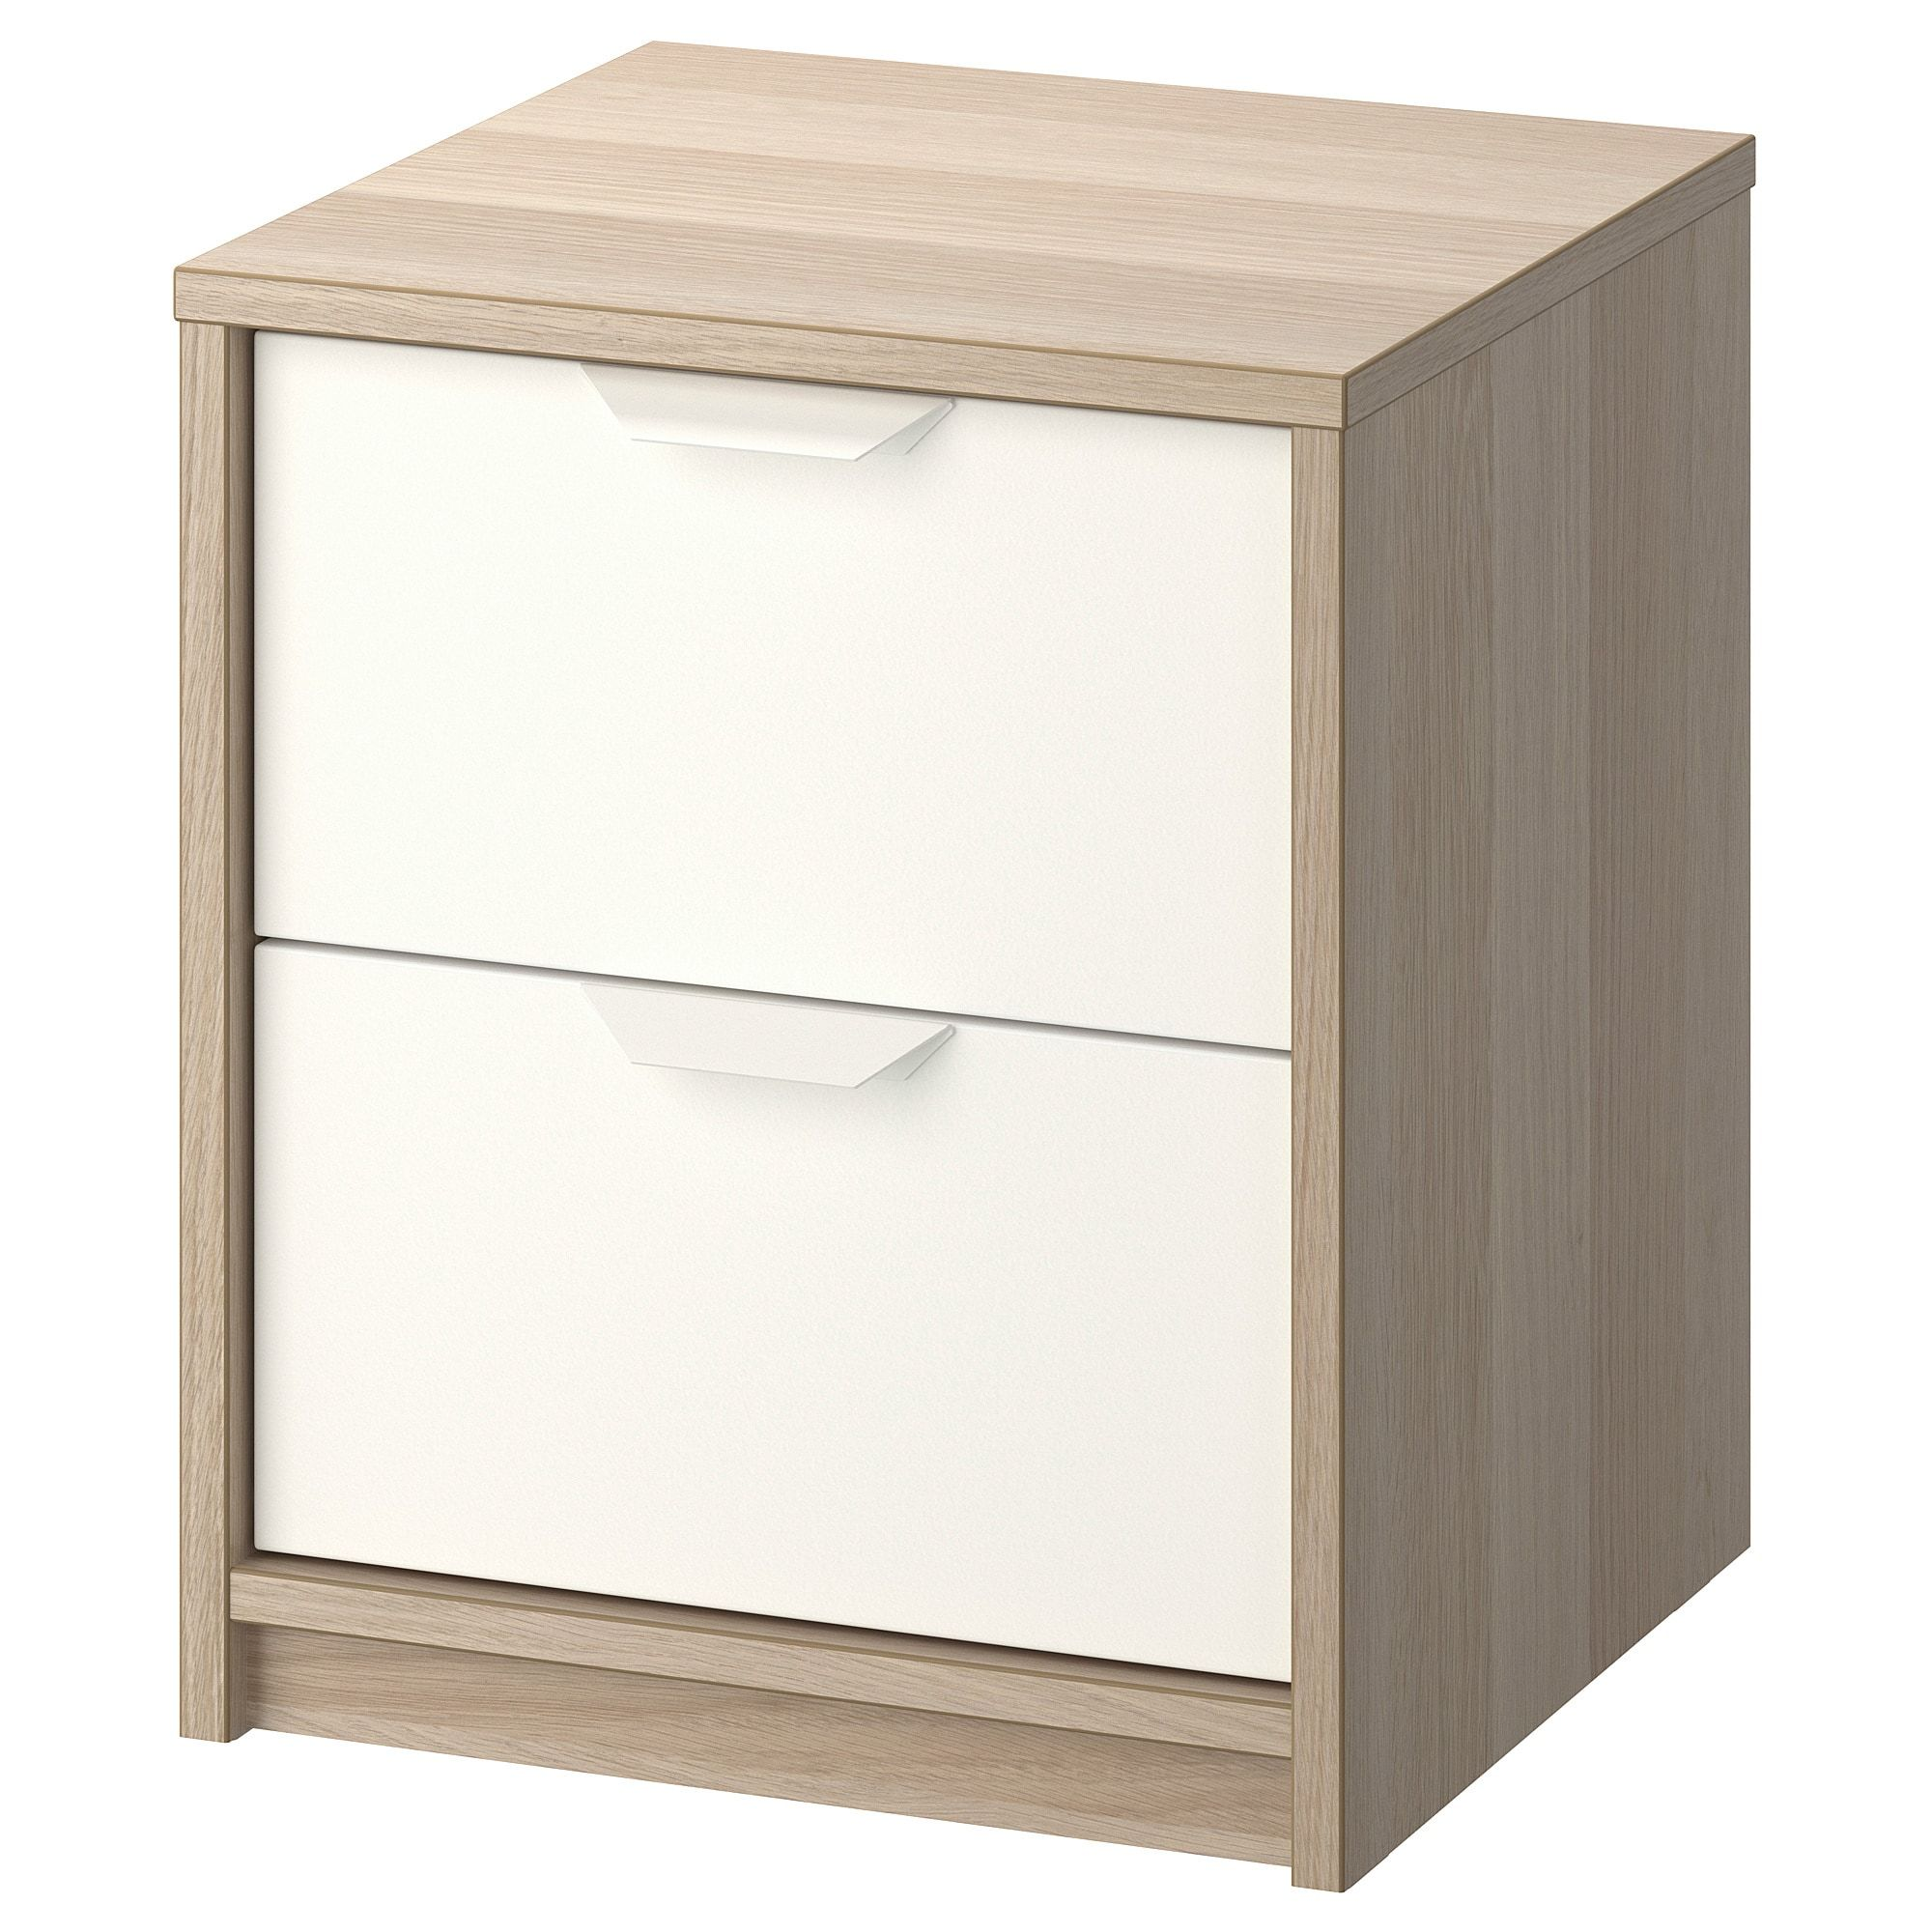 Ikea Askvoll White Stained Oak Effect White 2 Drawer Chest Askvoll Chest Of Drawers Storage Furniture